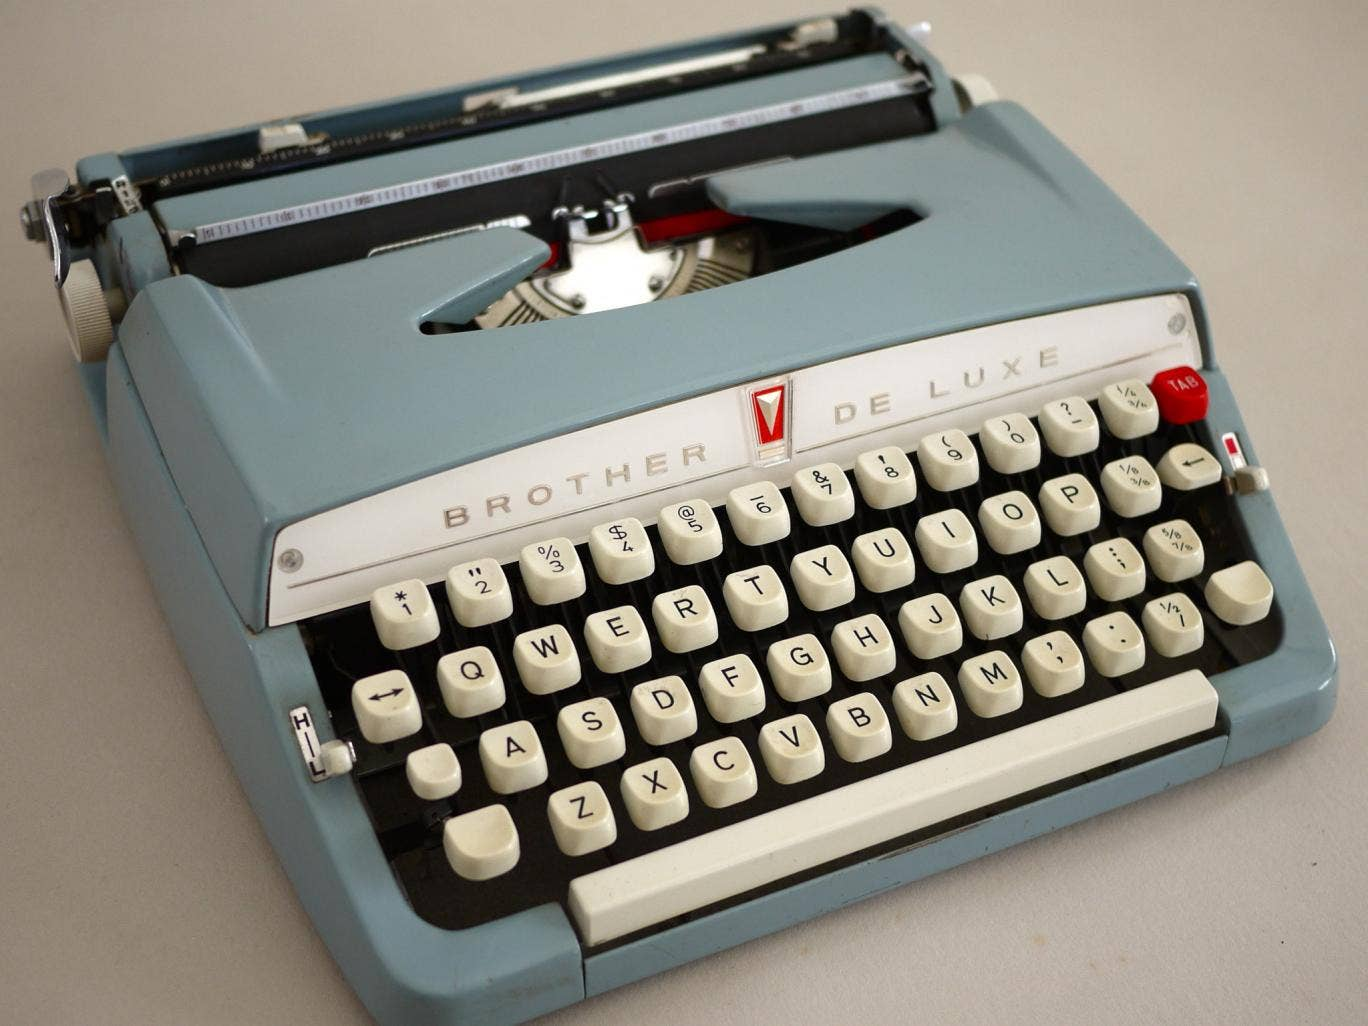 After 130 years of rattle and clang, the typewriter is dead